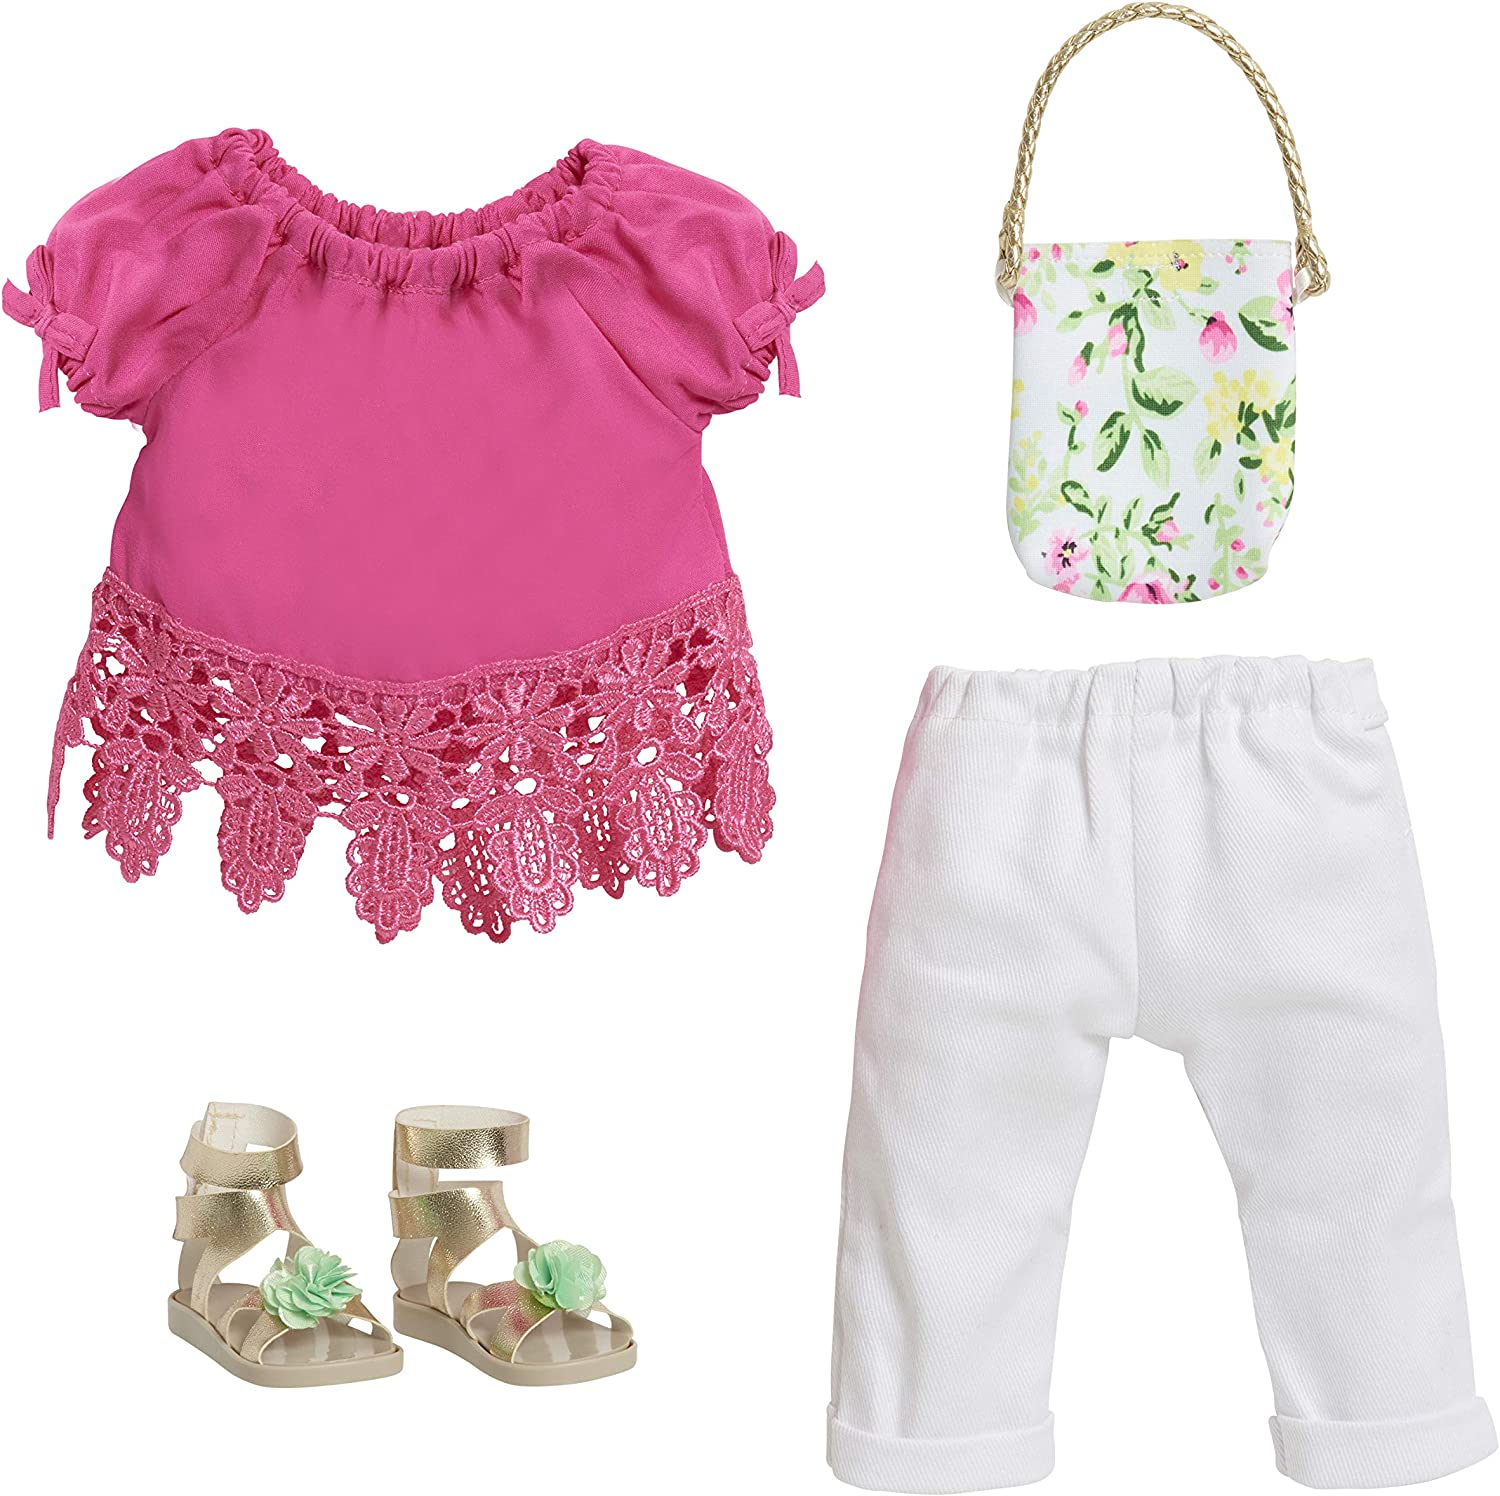 Journey Girls 18 Doll Fashion Set Pink Top /& White Jeans Exclusive